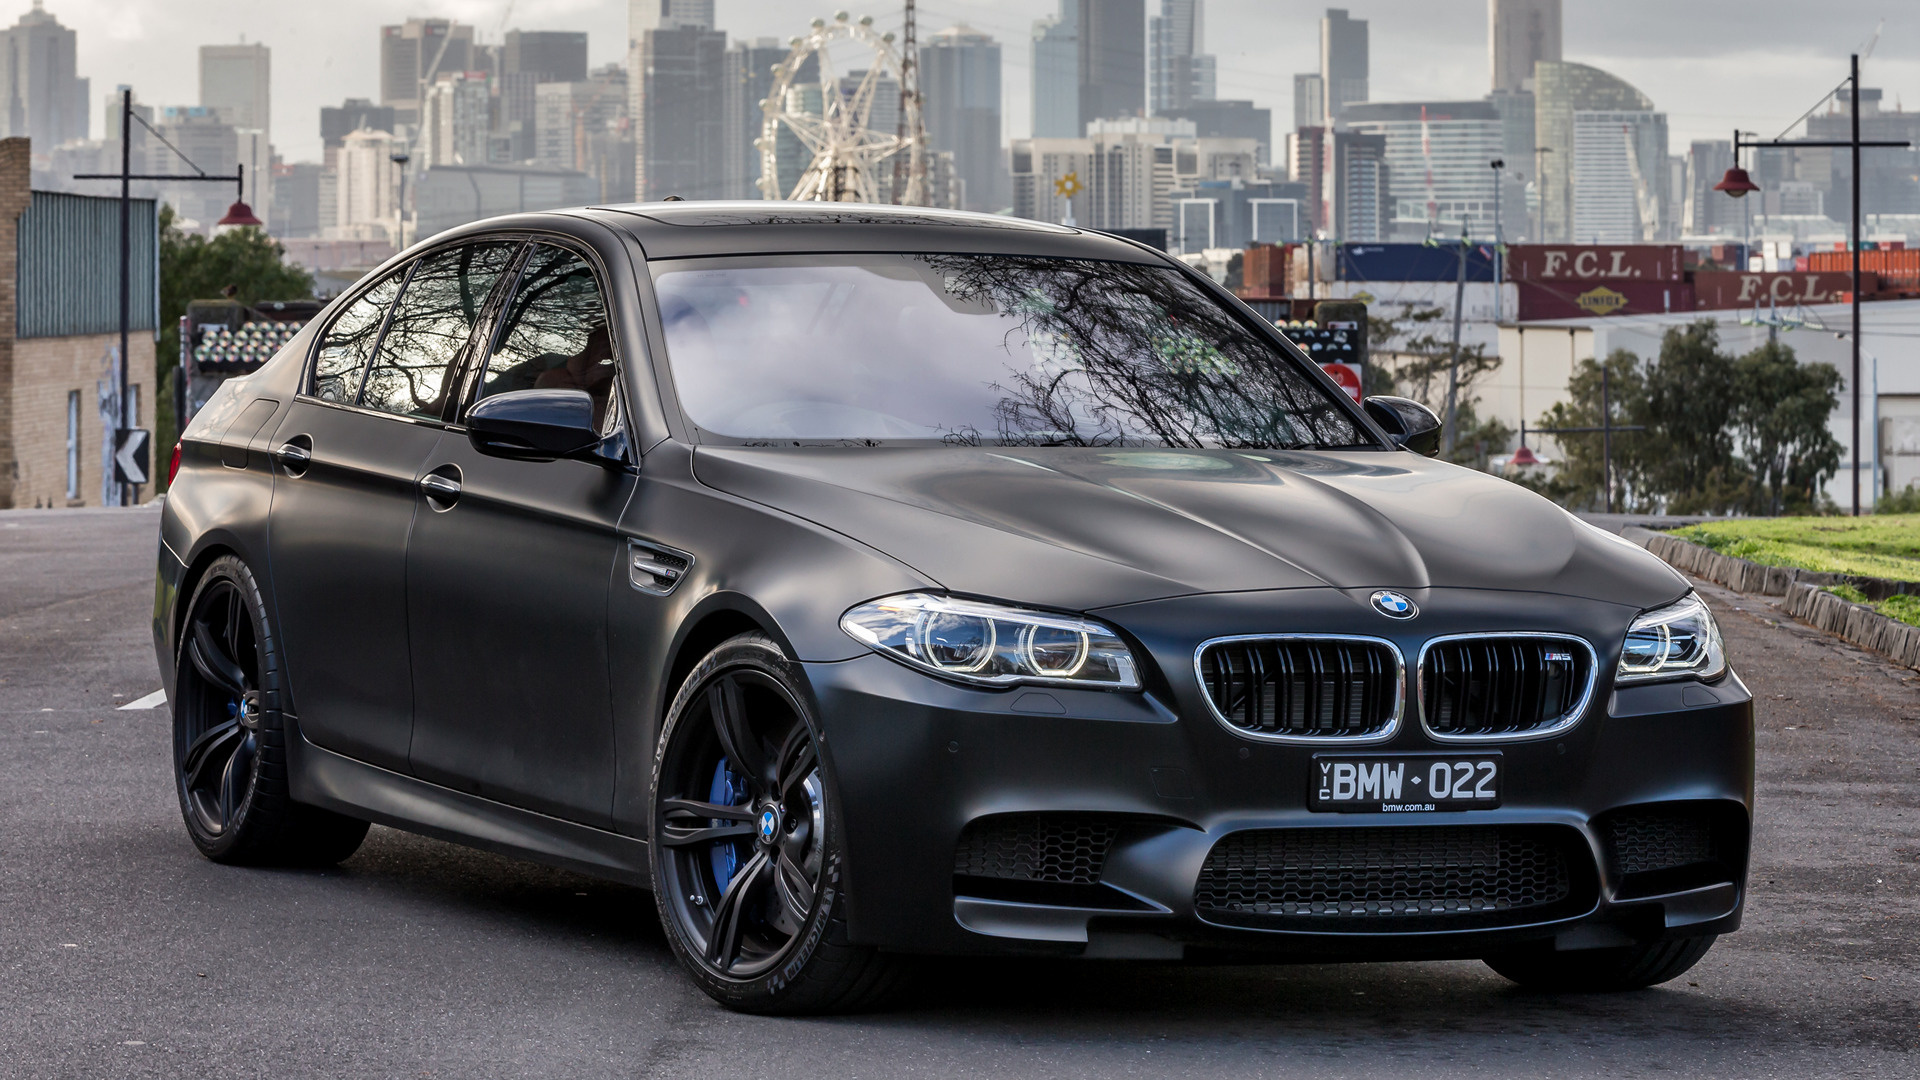 BMW M5 Nighthawk 2015 AU Wallpapers and HD Images   Car 1920x1080